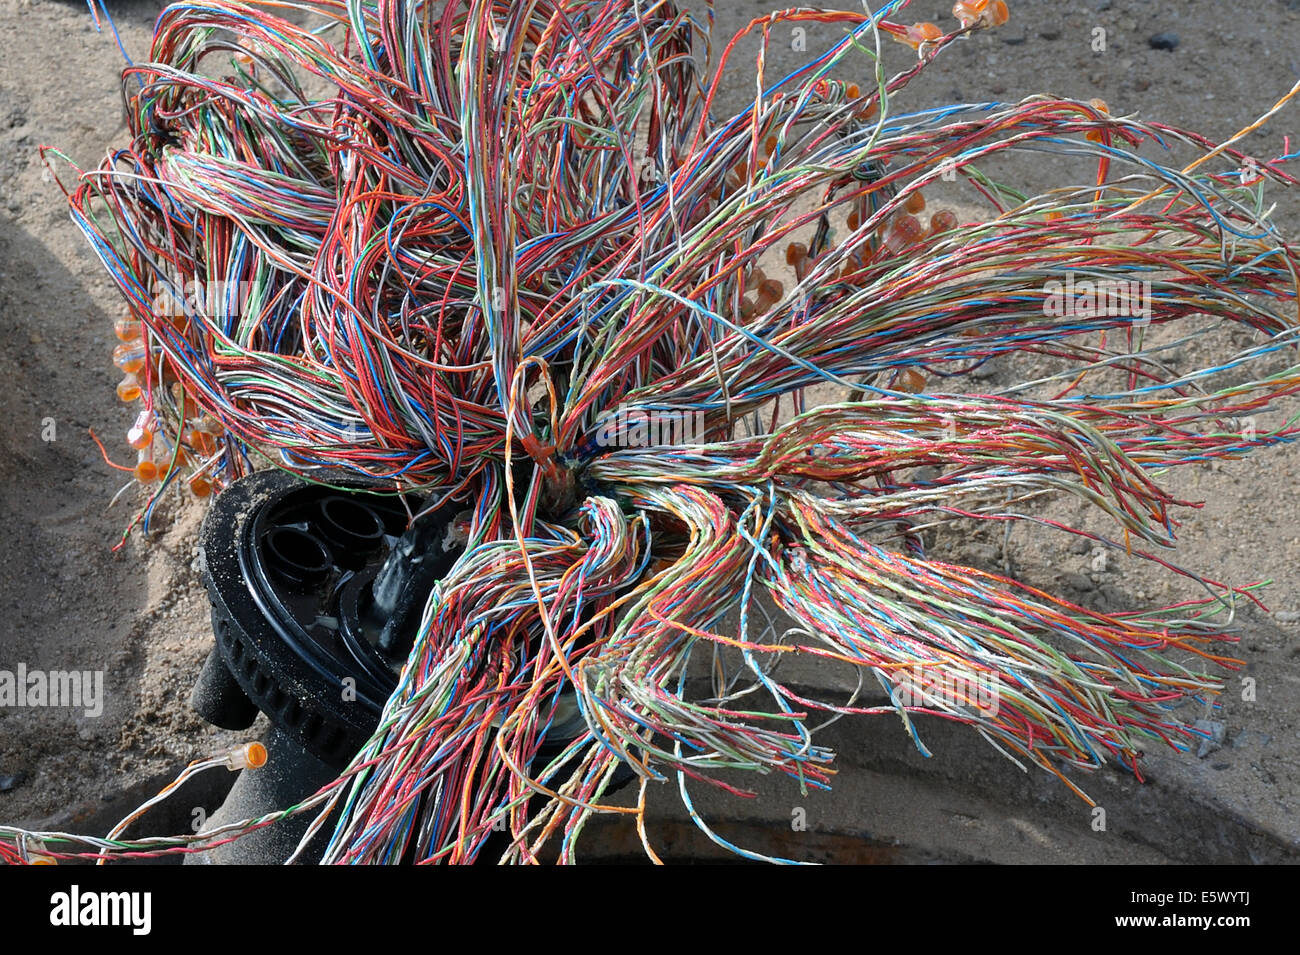 Wiring loom, telecommunications cable - Stock Image